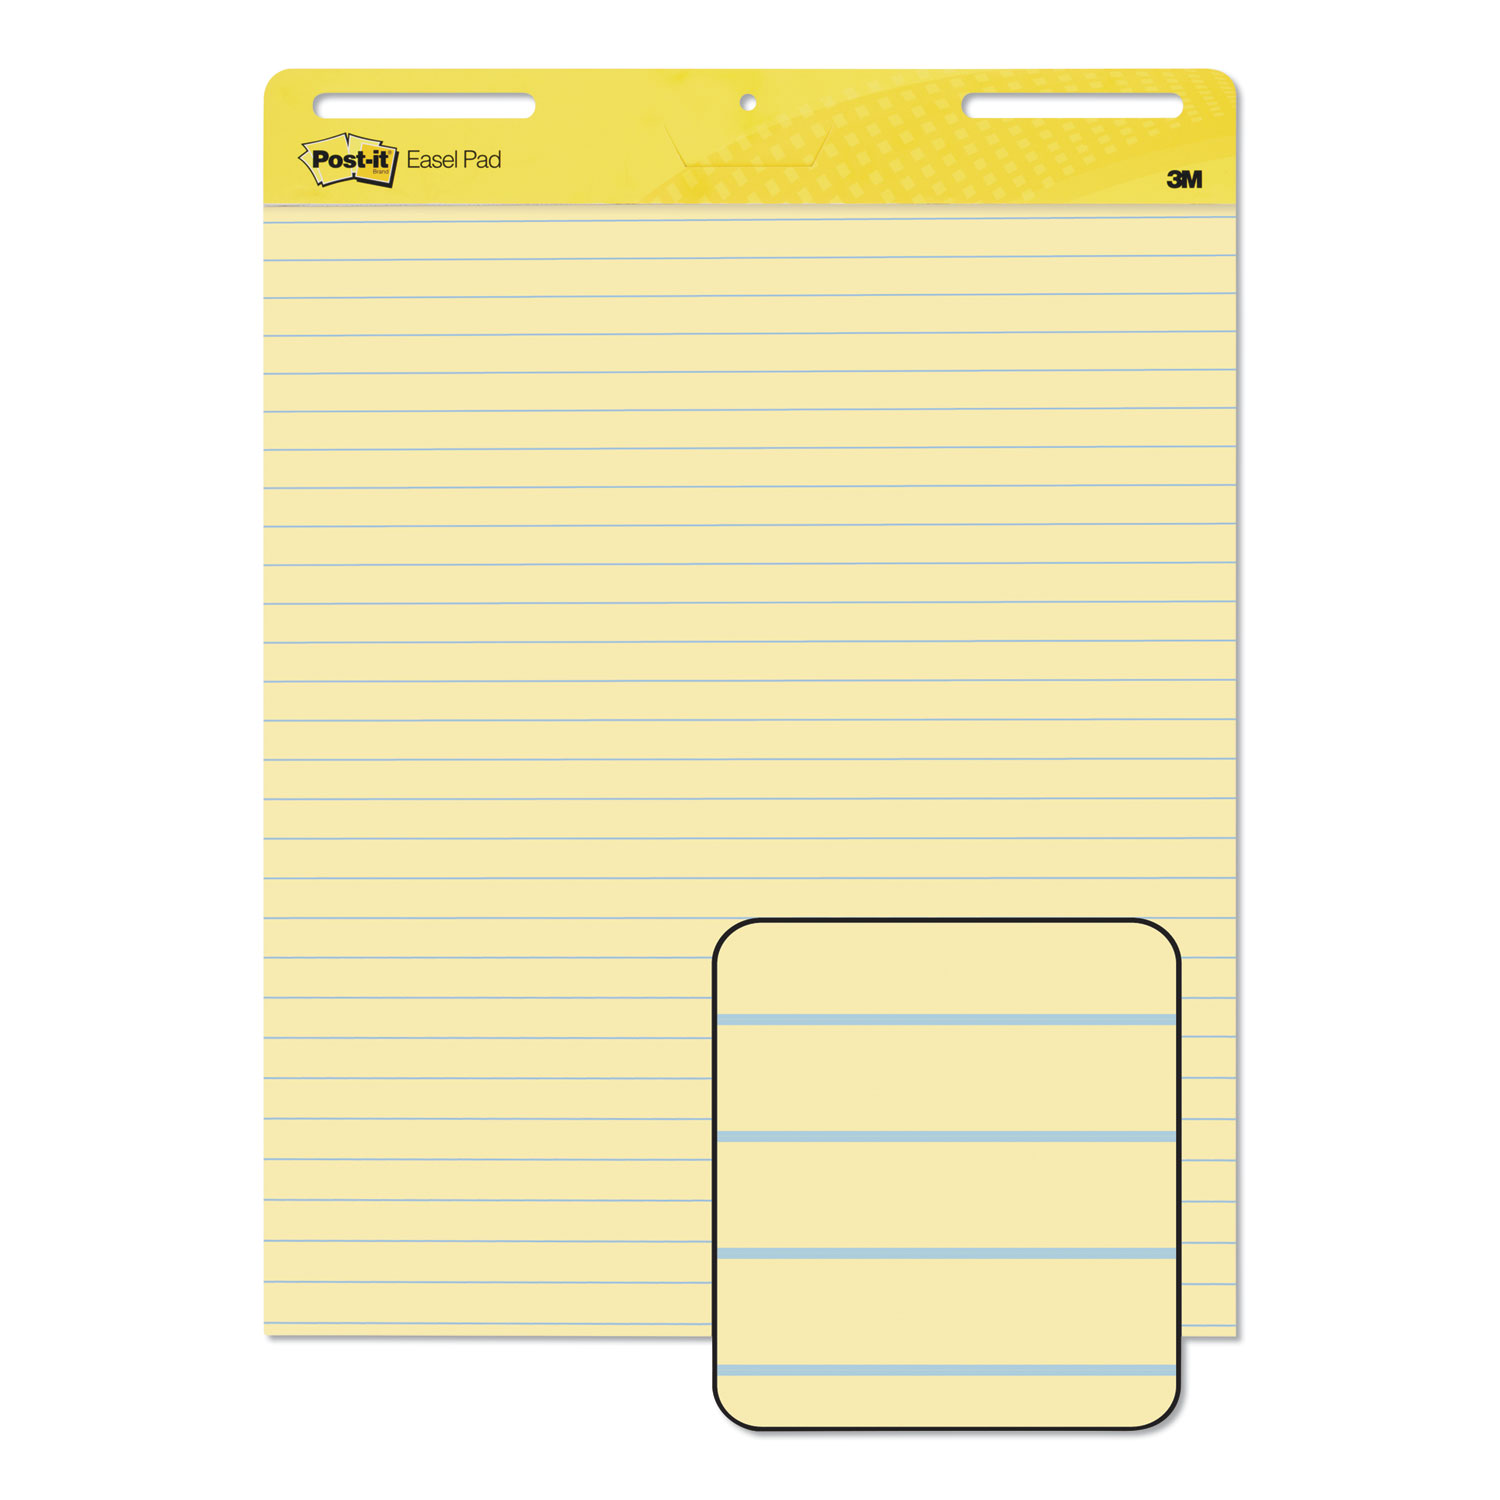 Self-Stick Easel Pads, 25 x 30, Yellow, 30 Sheets, 2/Carton